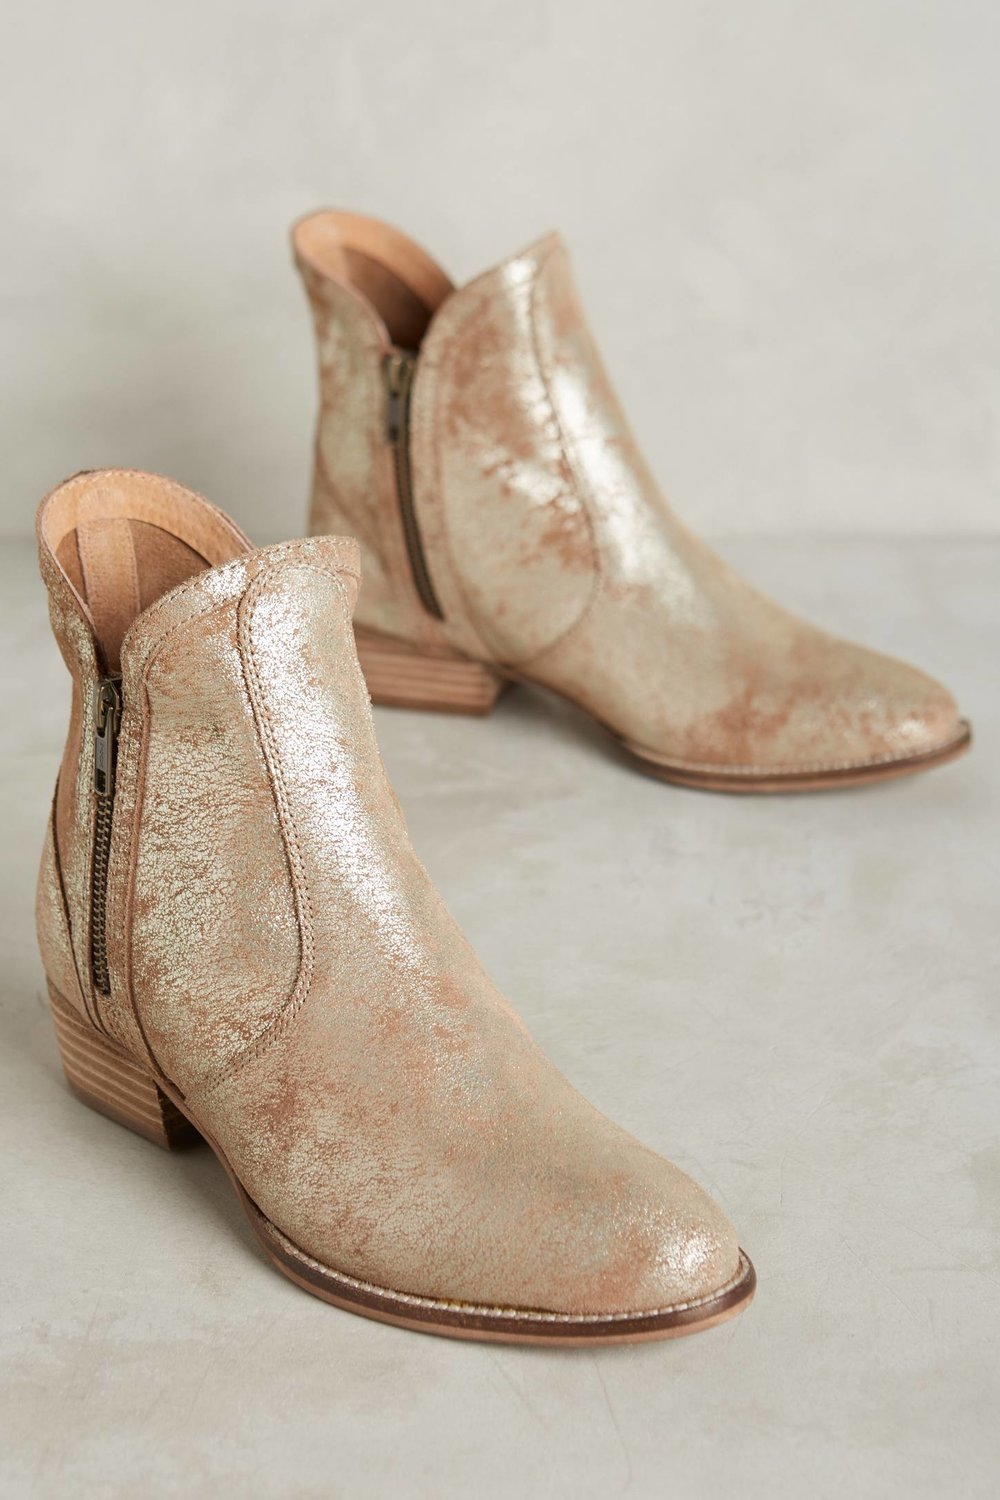 Seychelles Lucky Penny Booties. Available in three colors. Anthropologie. $140-148.